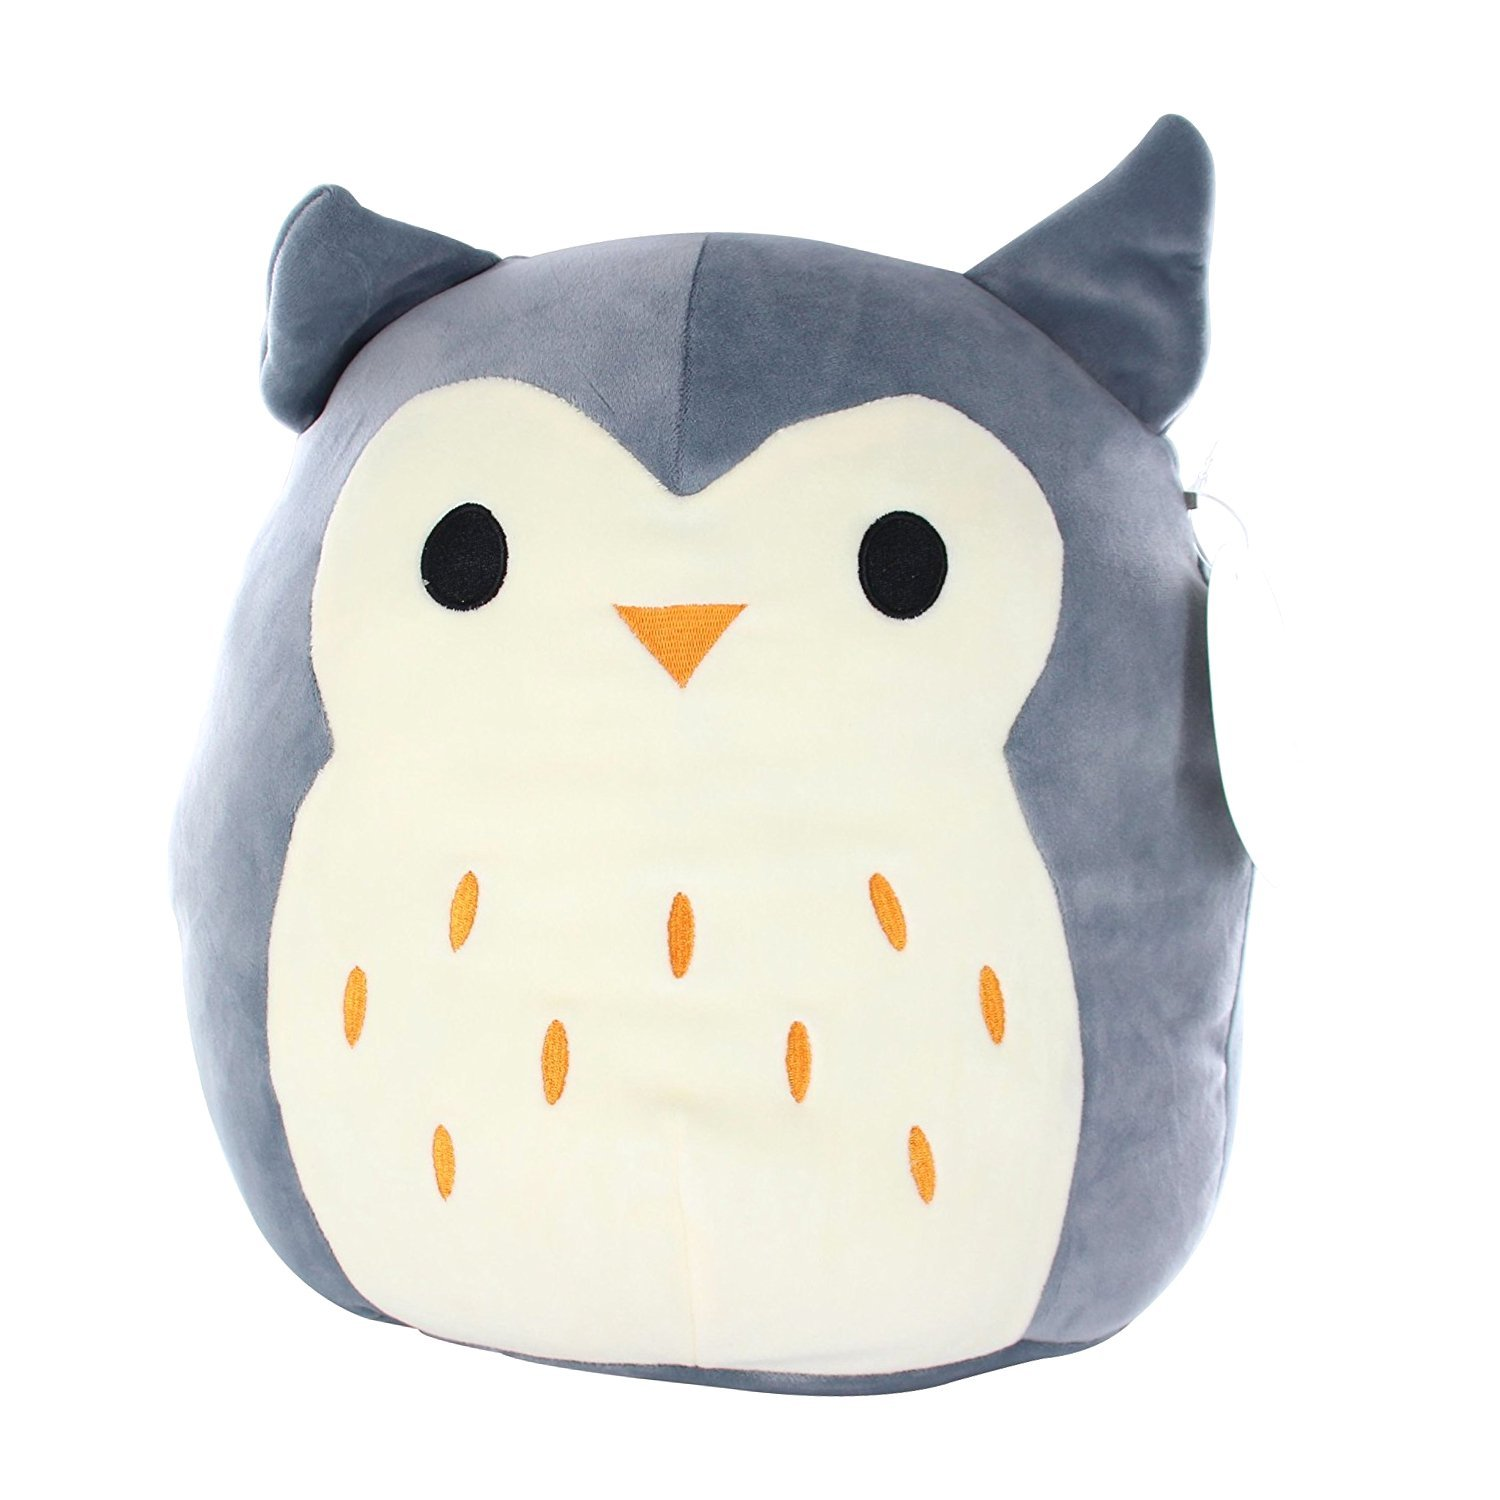 Kellytoy Squishmallow Gray Owl Pillow Plush Toy, 13 inches